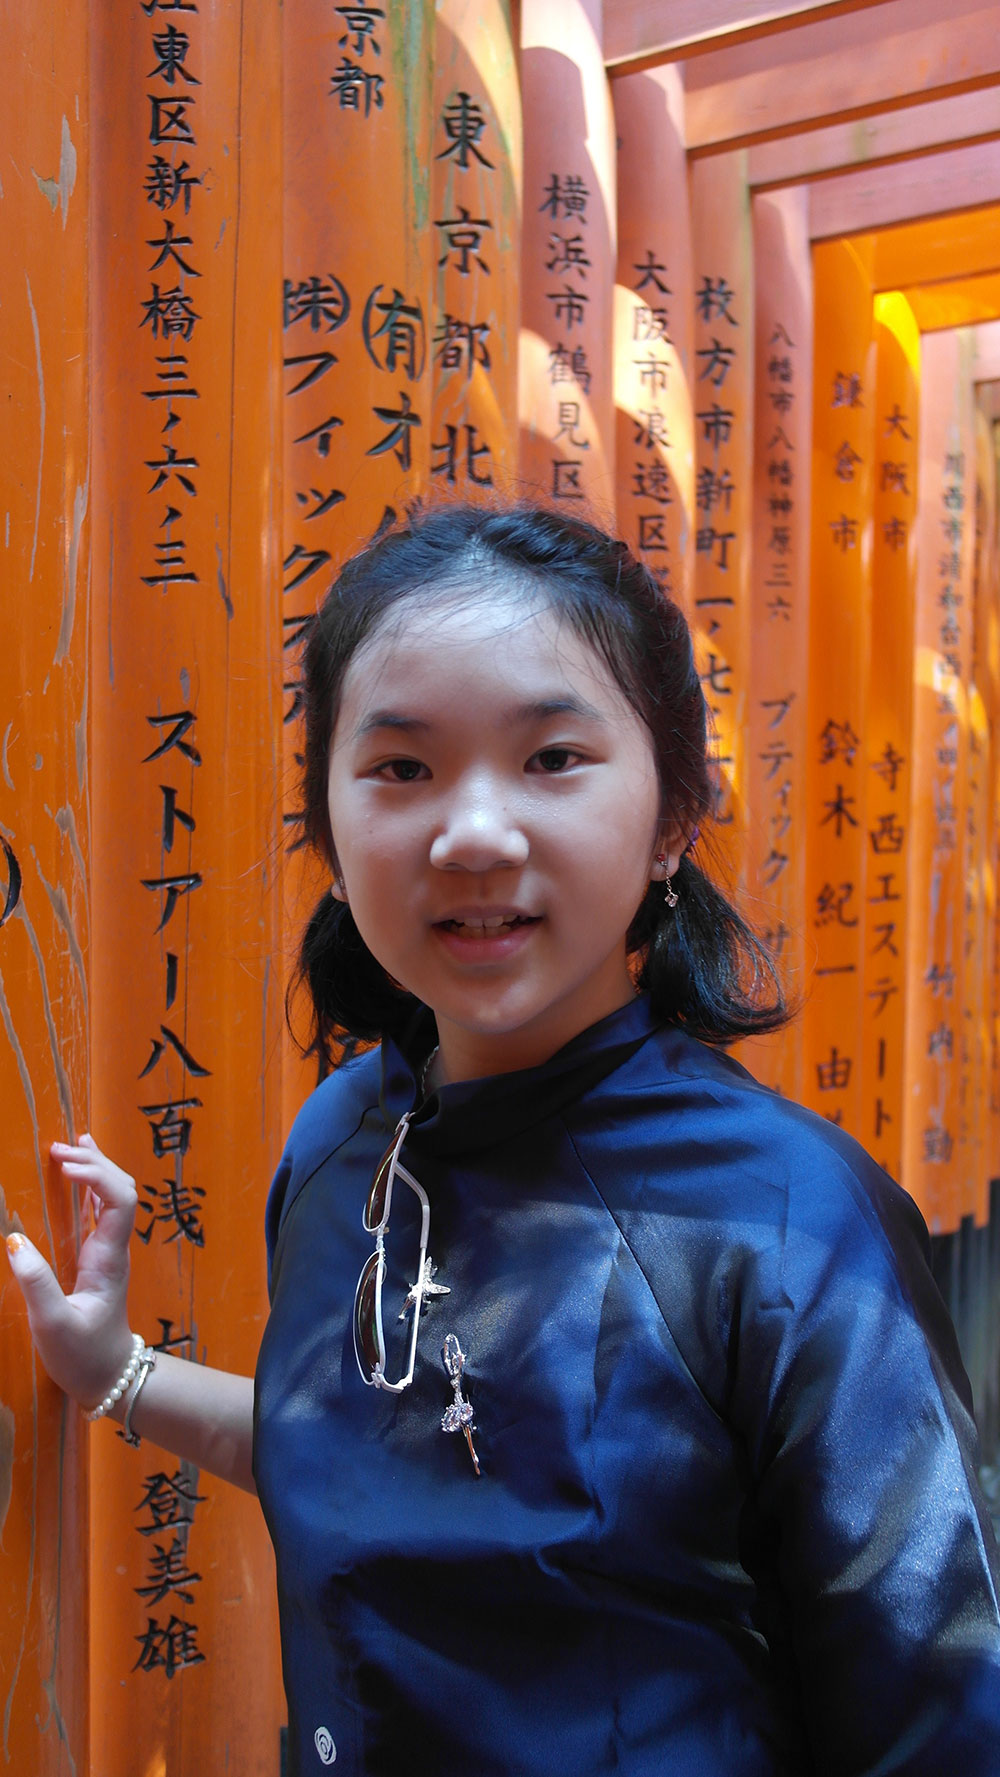 Fushimi-Inari-Shrine-46